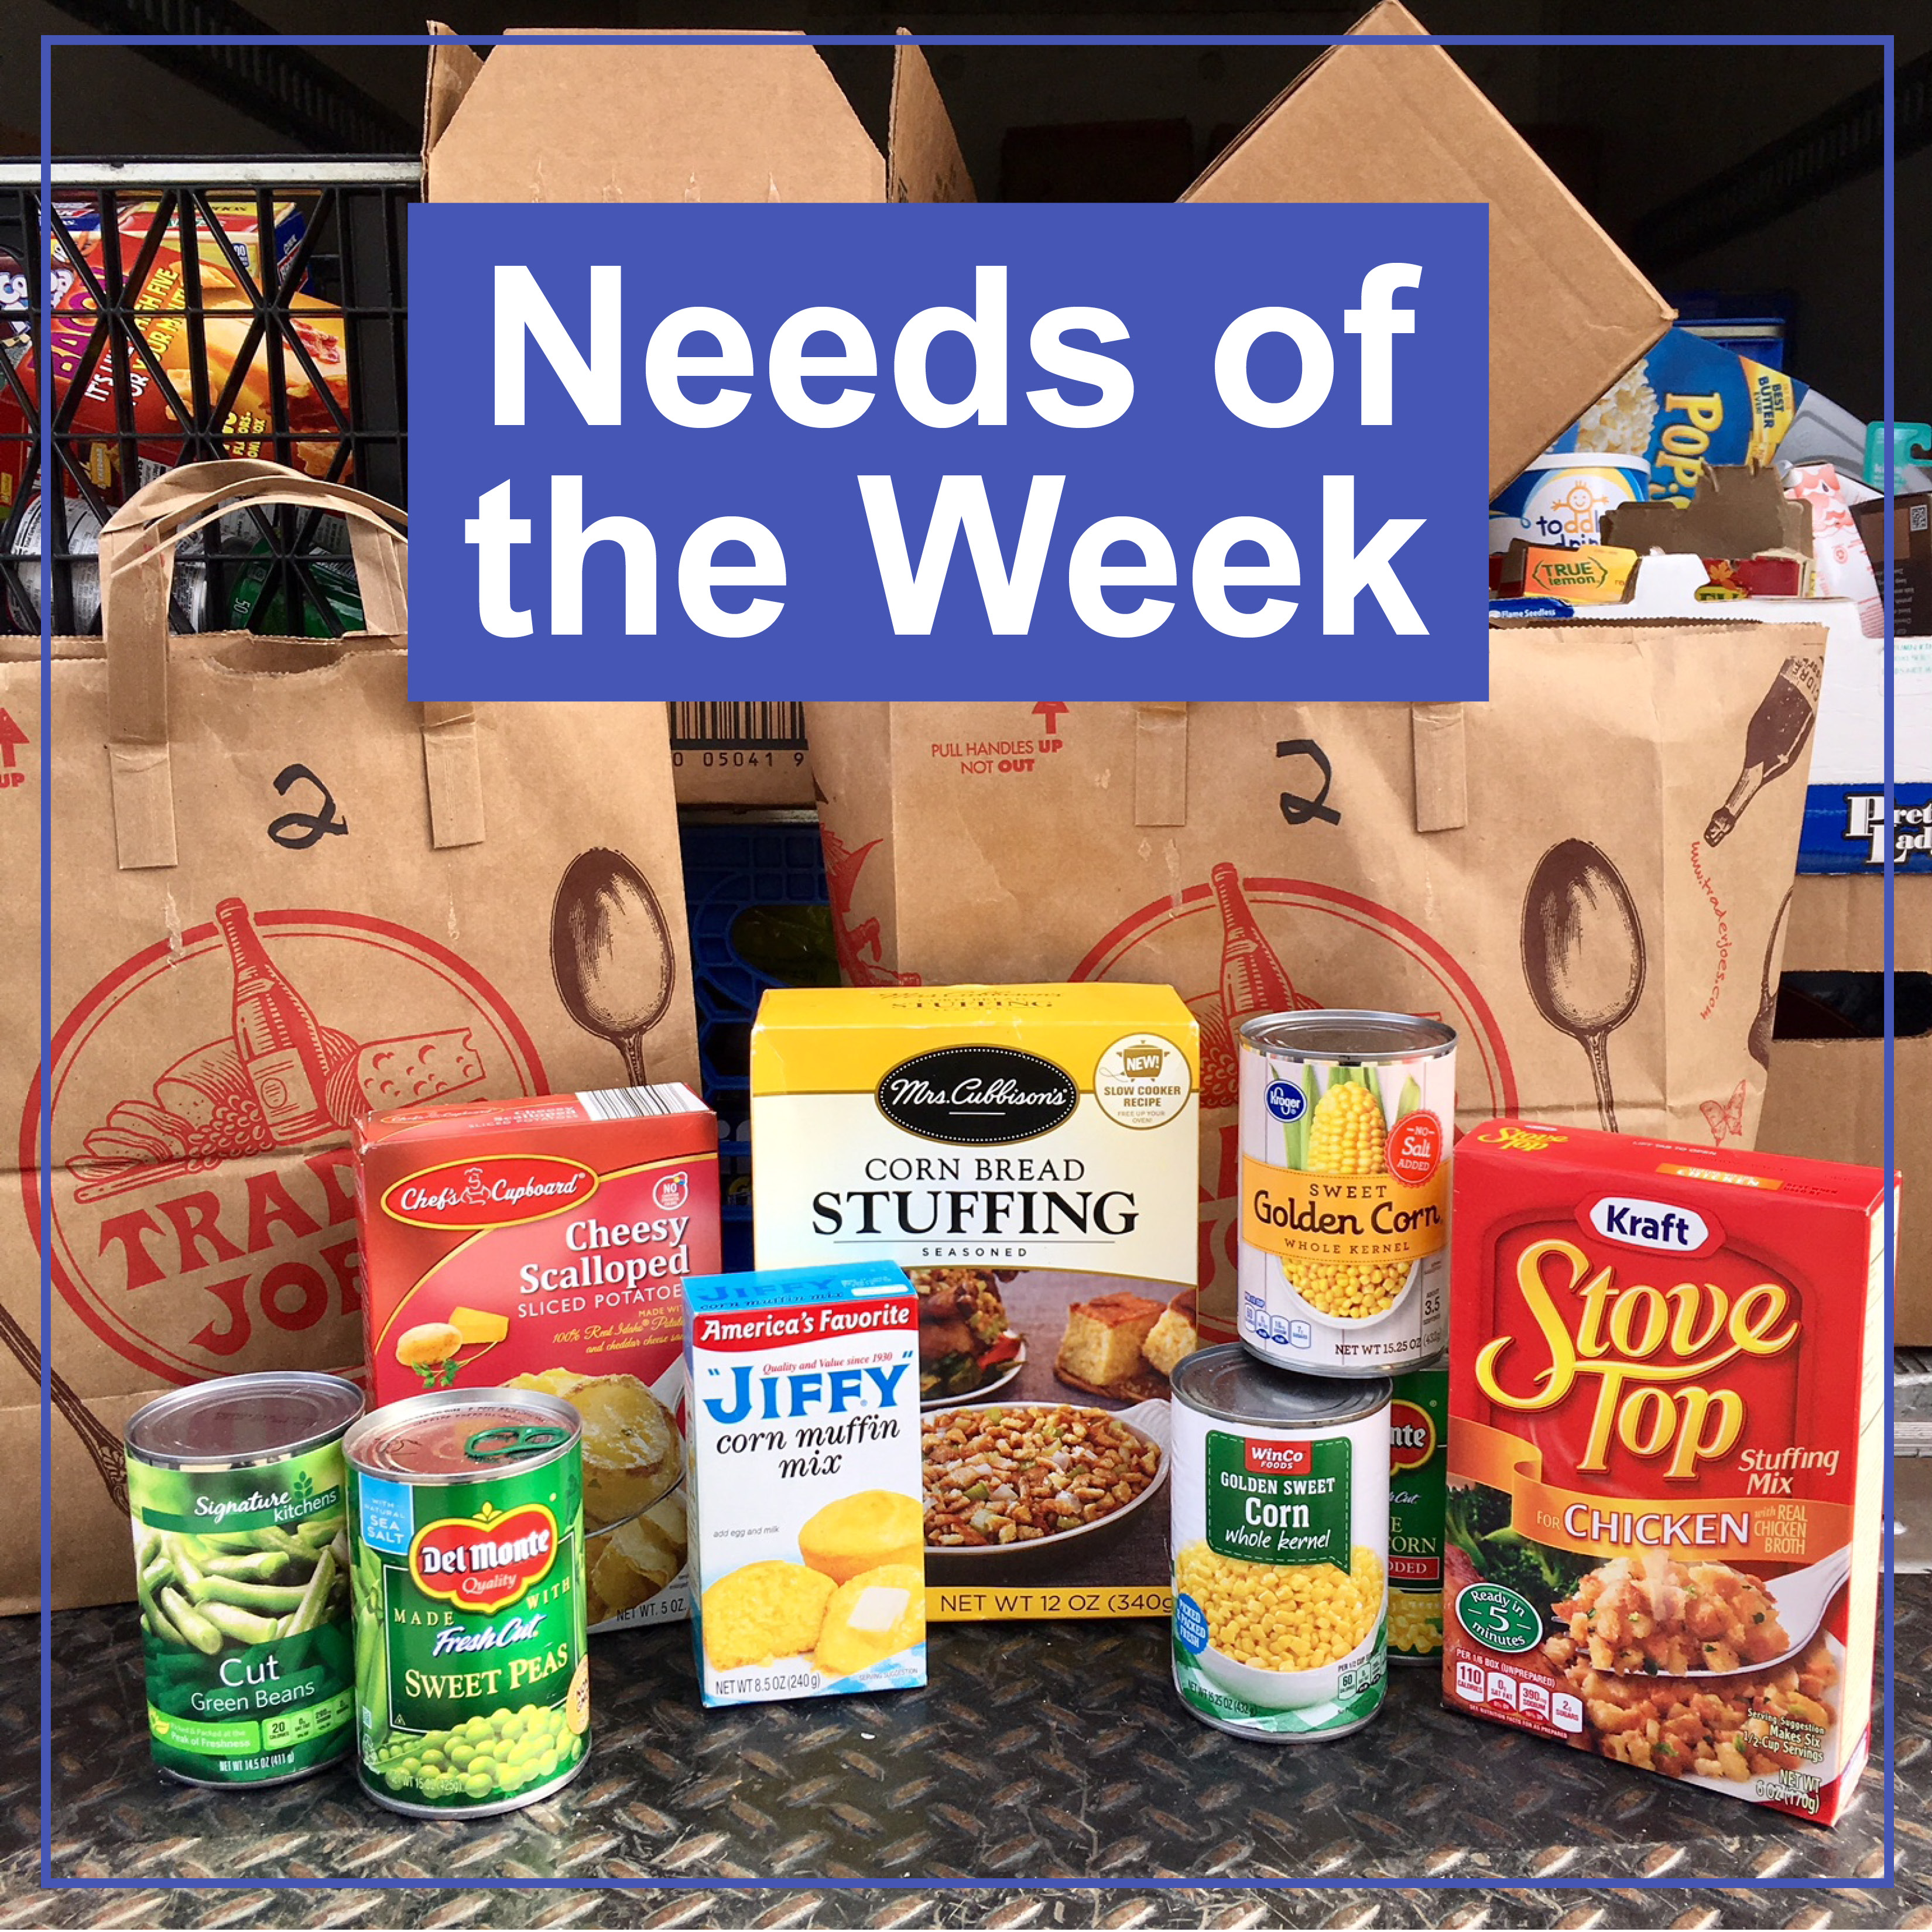 needs of the week various groceries